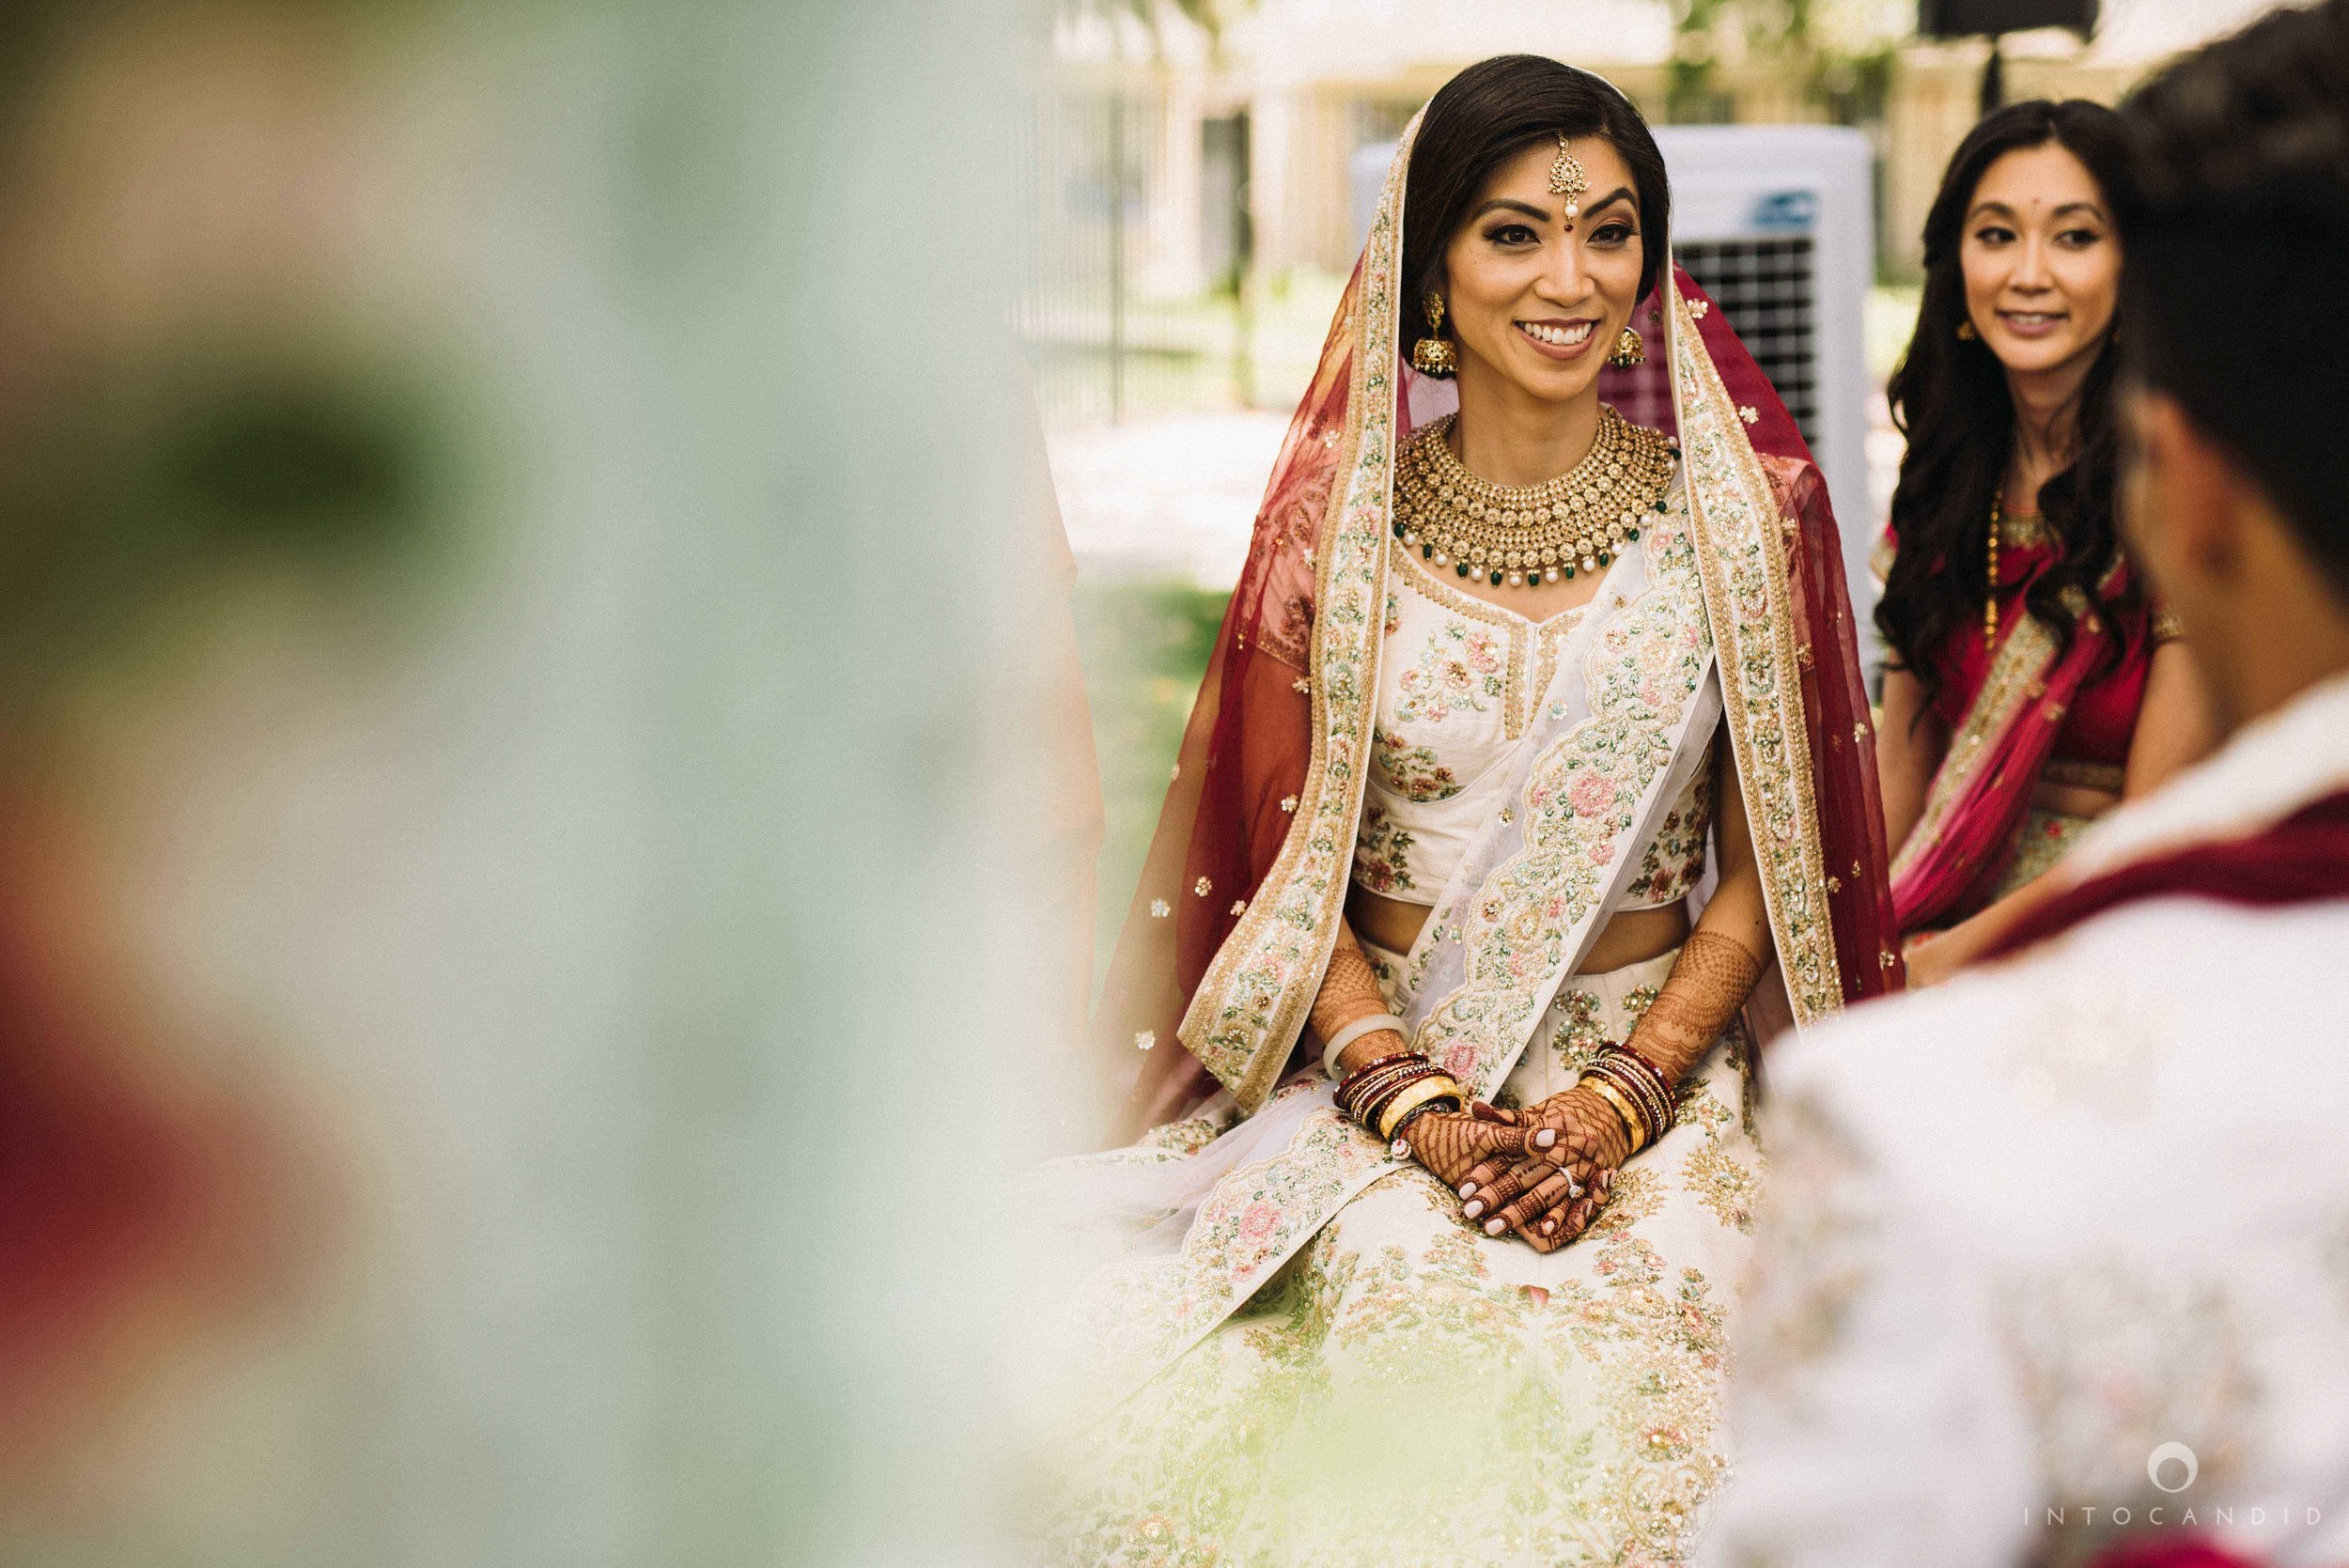 LosAngeles_Indian_Wedding_Photographer_AS_094.jpg